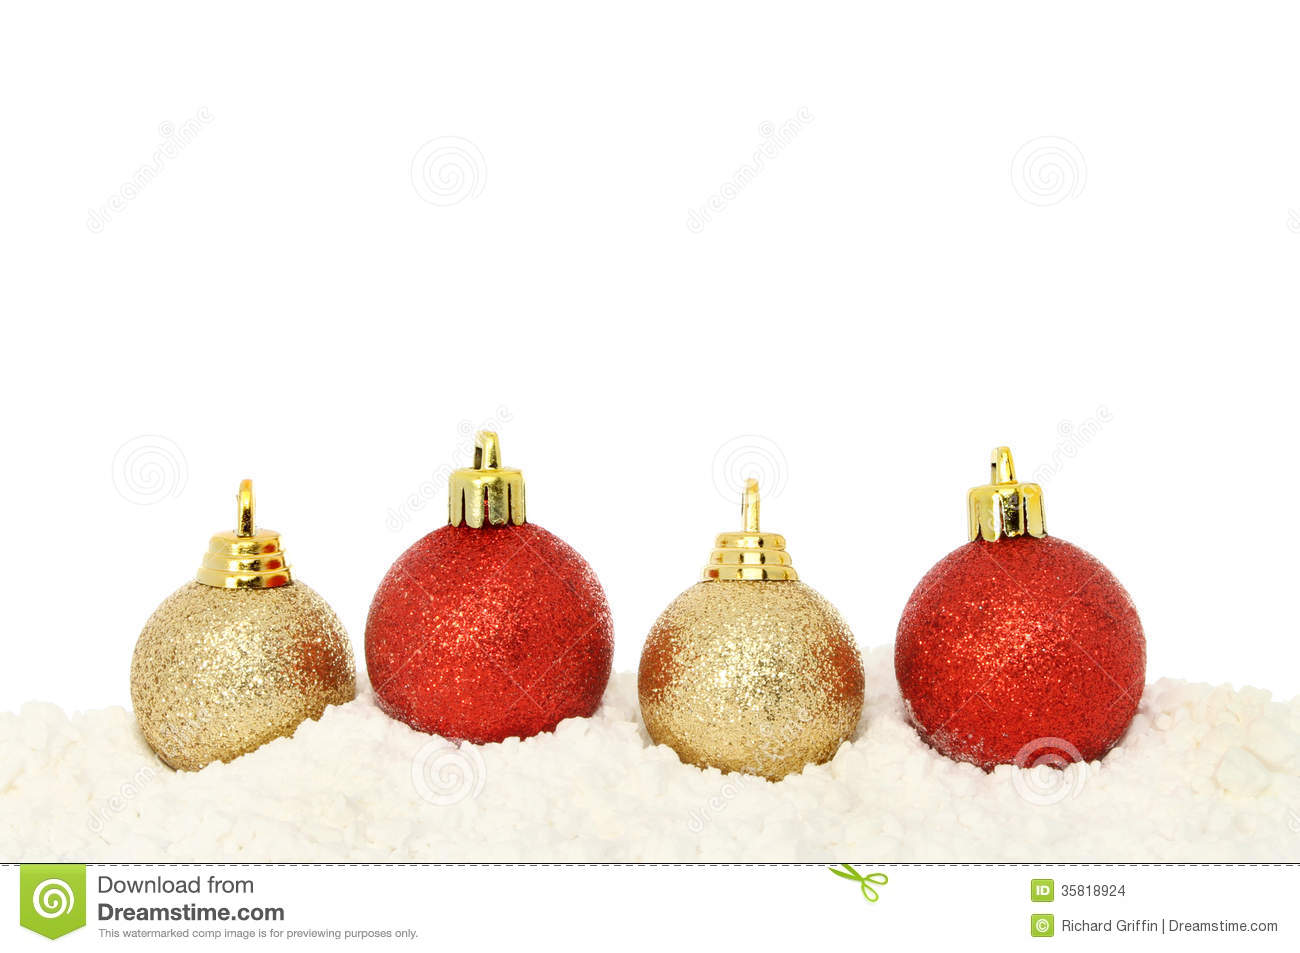 56476a0fc0a0 Red and gold Christmas baubles on snow with white copy space above